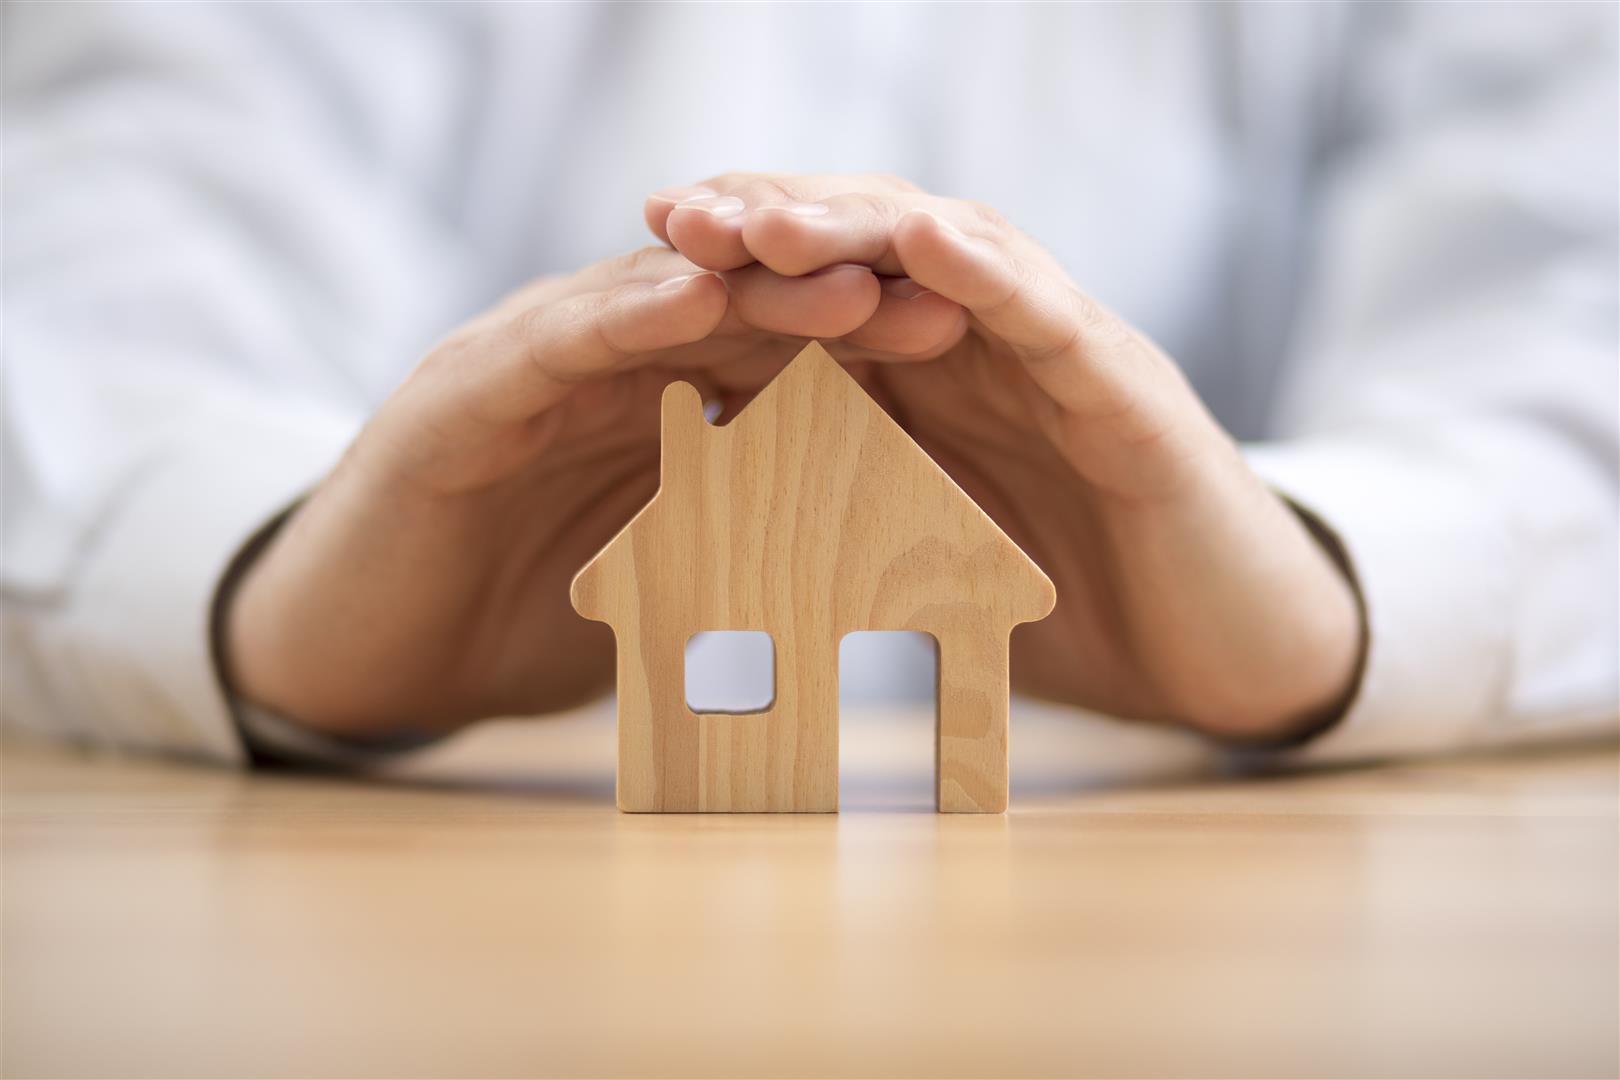 COTW discusses 4 tips for choosing the right home insurance